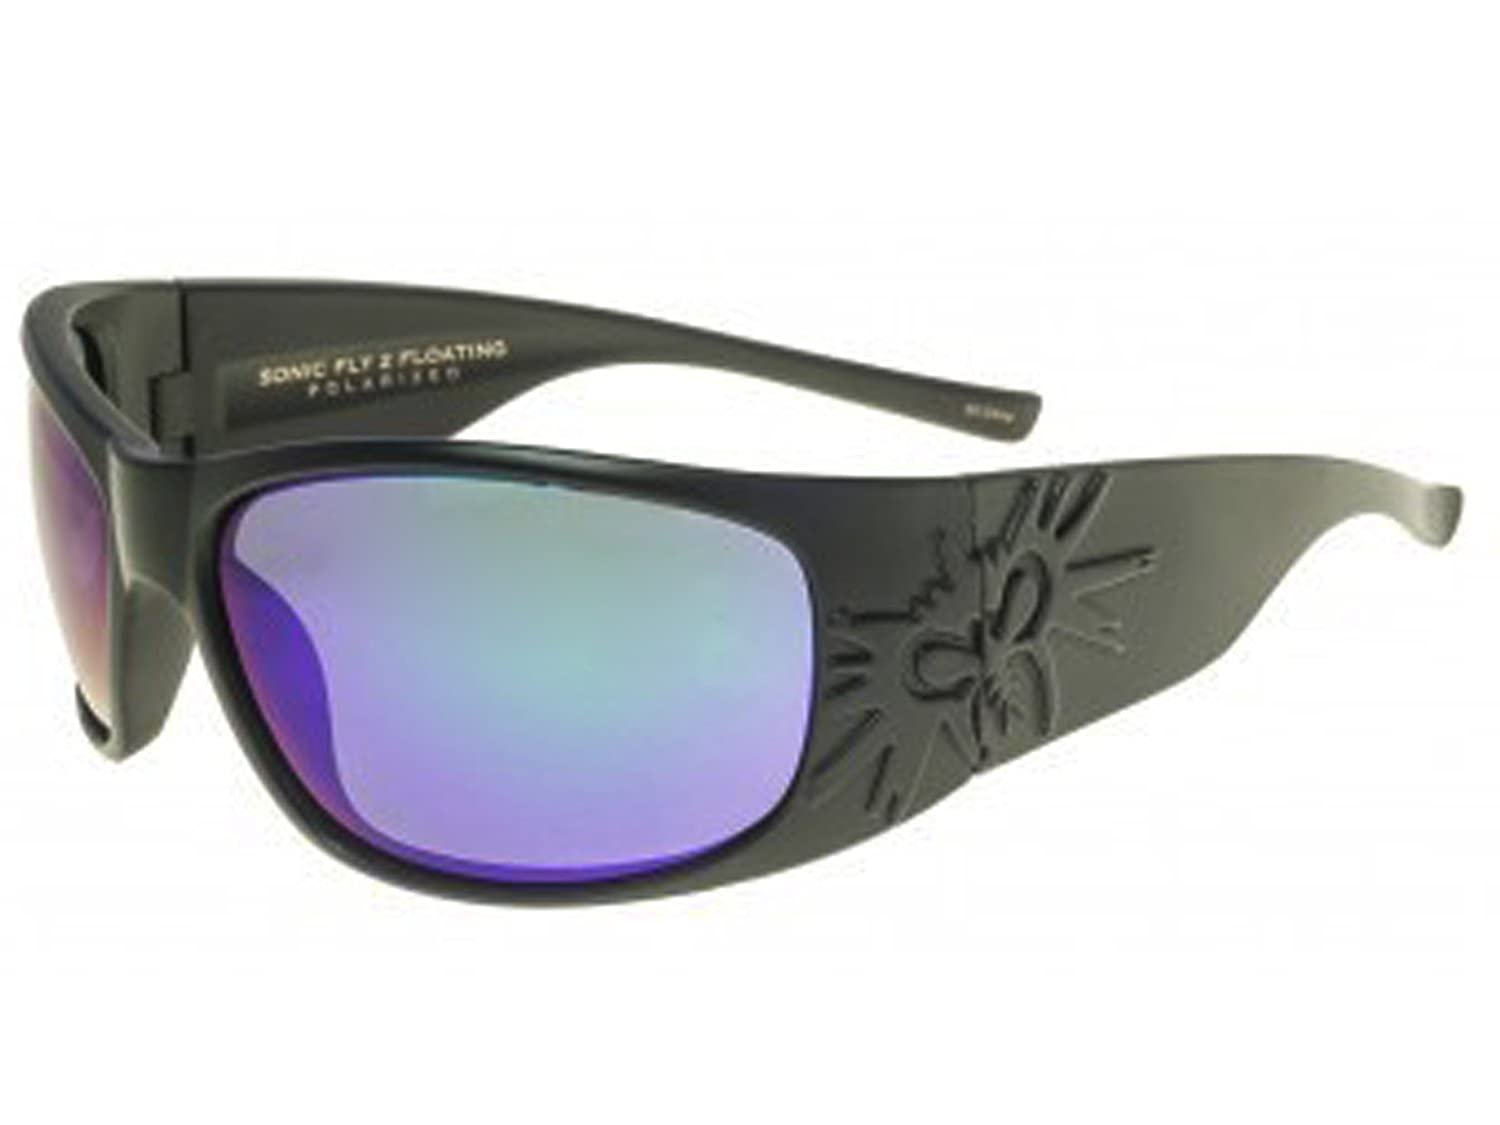 Floating 2 Fly Sunglasses Sonic Flys Black mPvOwNn8y0